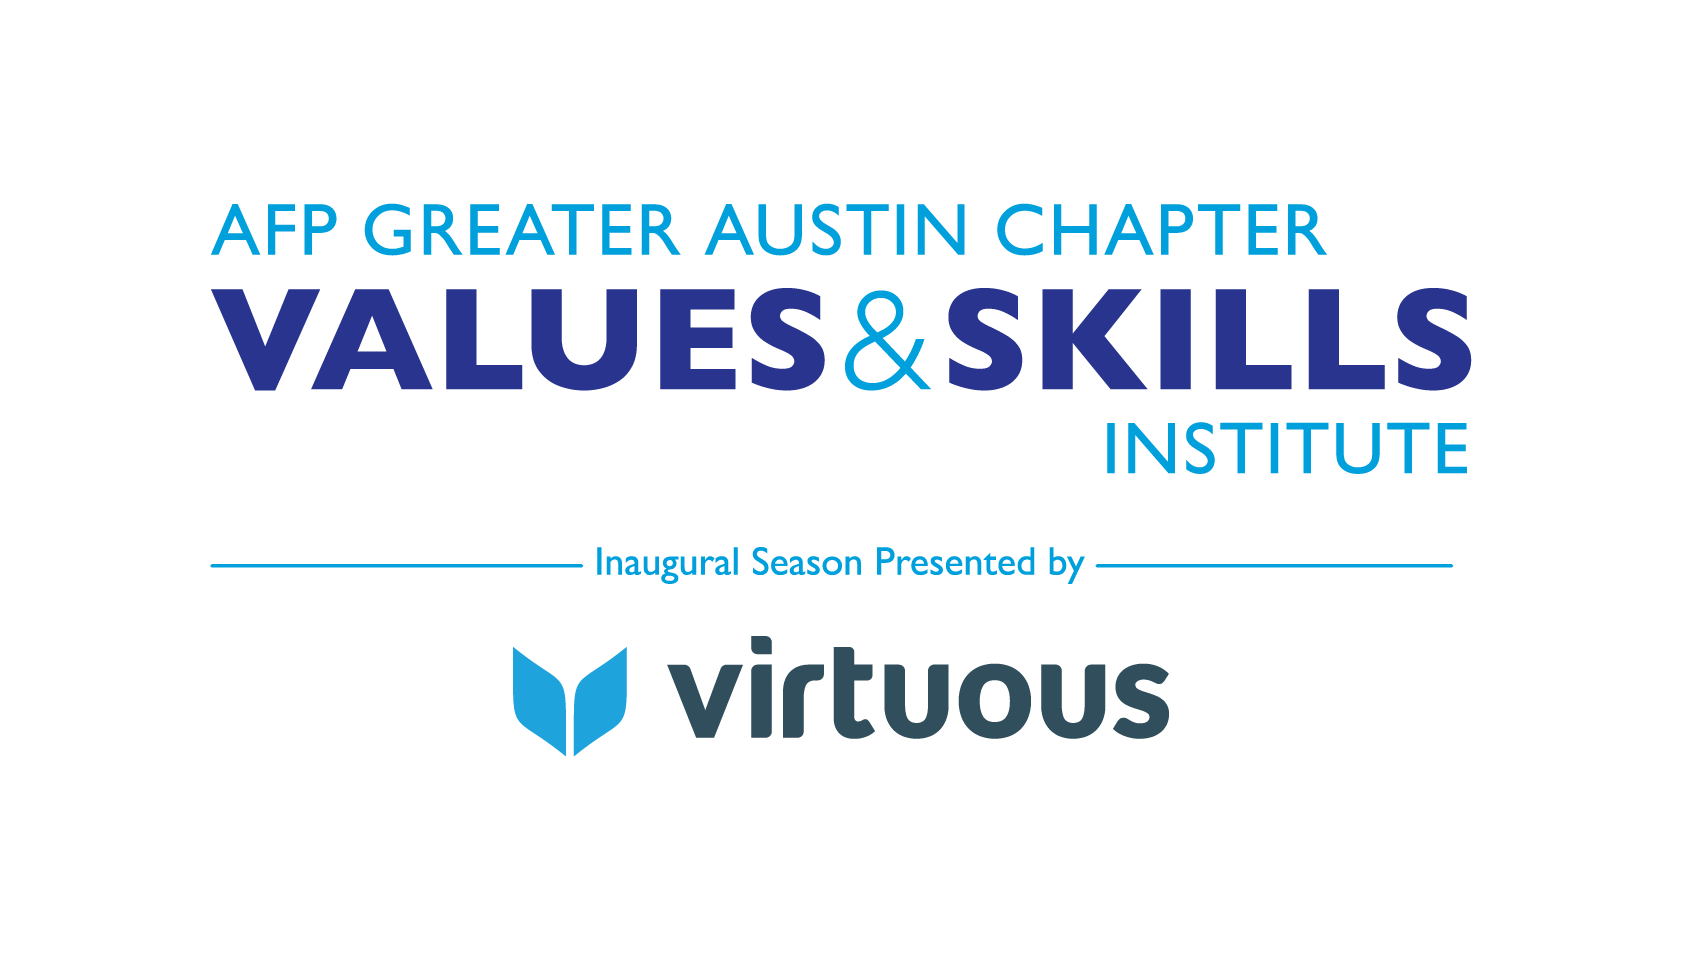 Image is a logo that reads AFP Greater Austin Values and Skills Institute, Inaugural season presented by virtuous